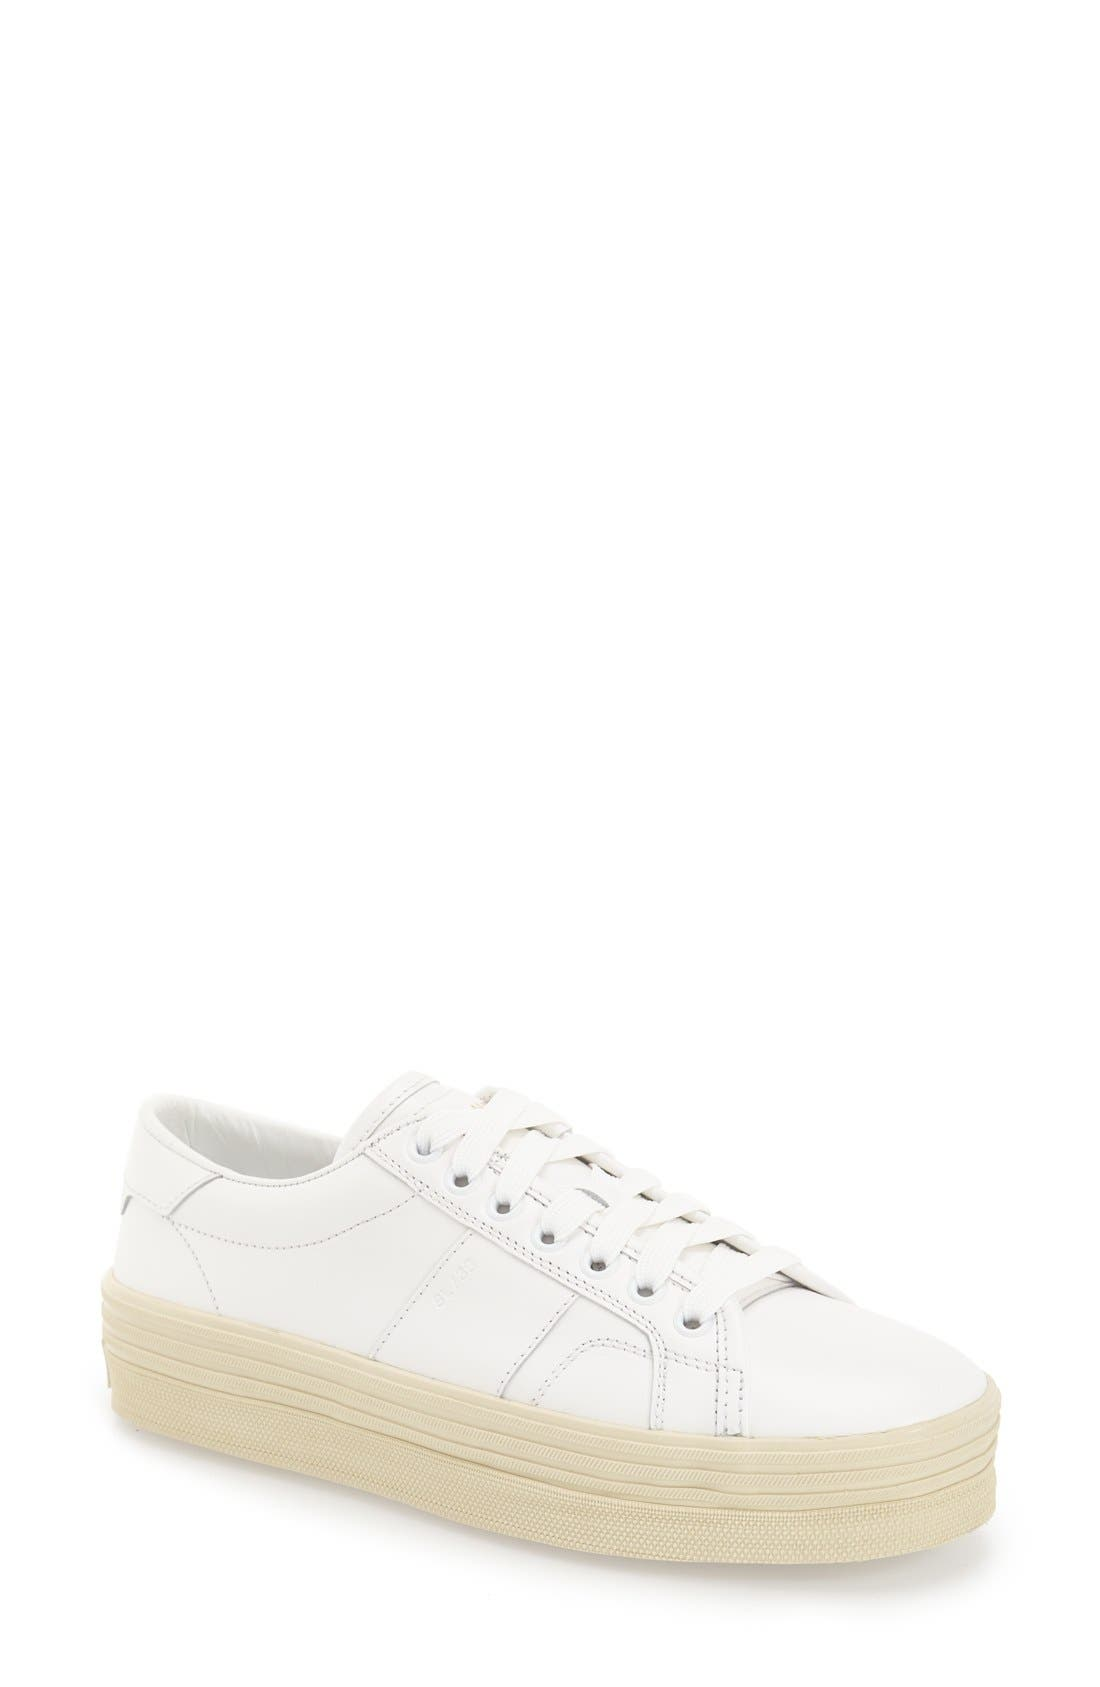 Saint Laurent Double Sole Sneaker (Women)